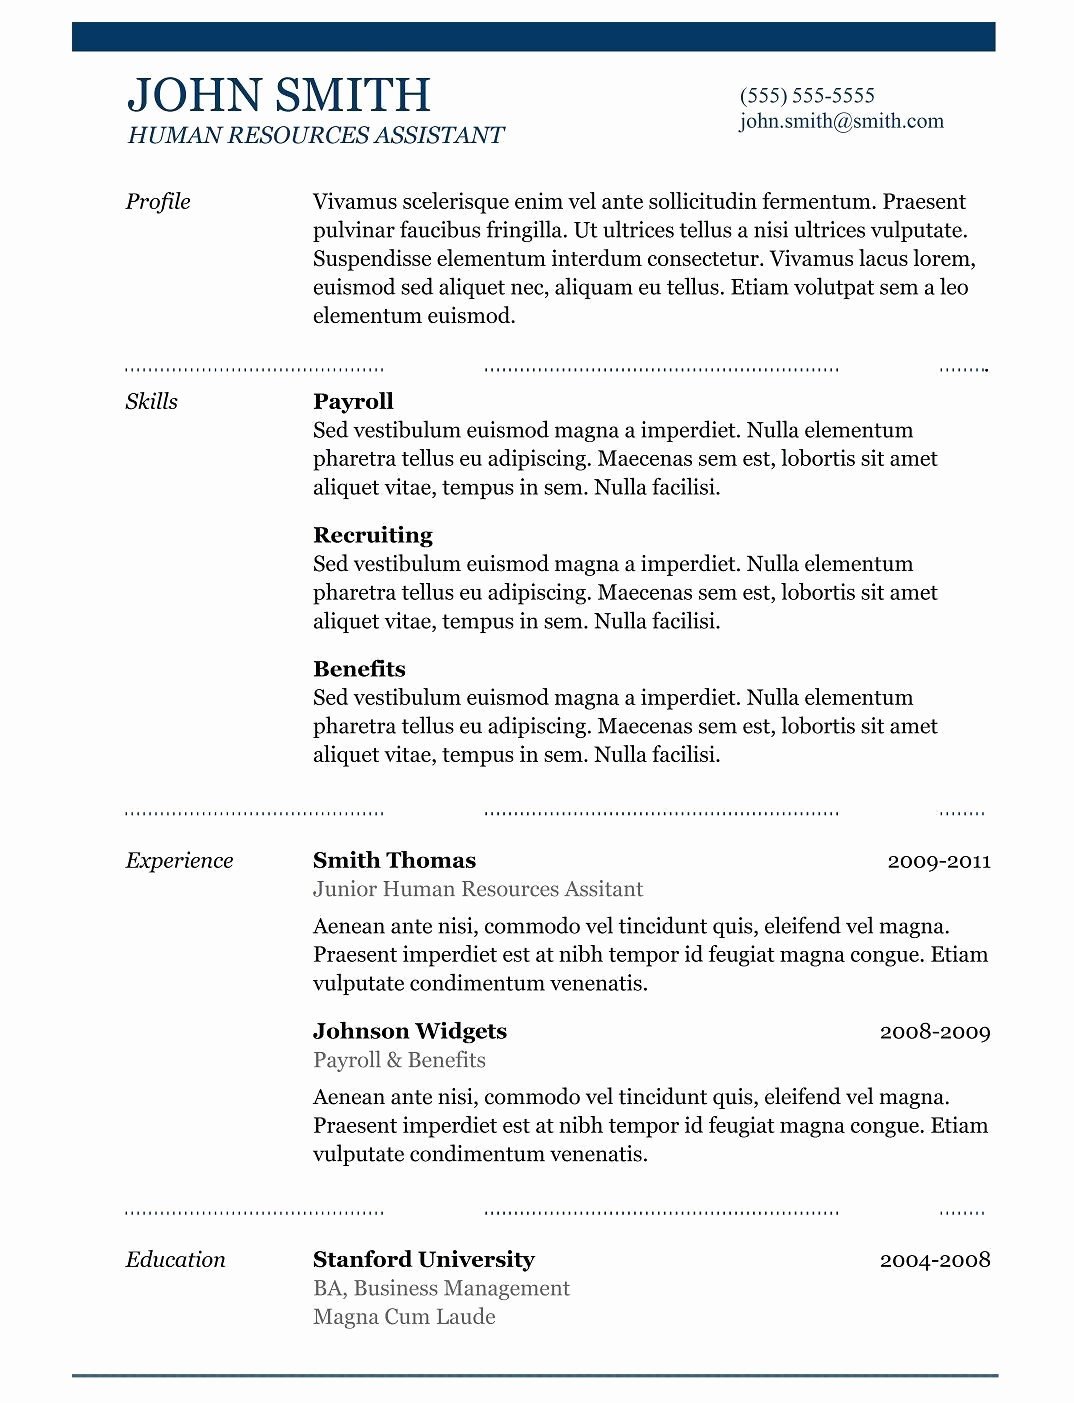 Resume Models In Word format Lovely 8 Resume Model Word format